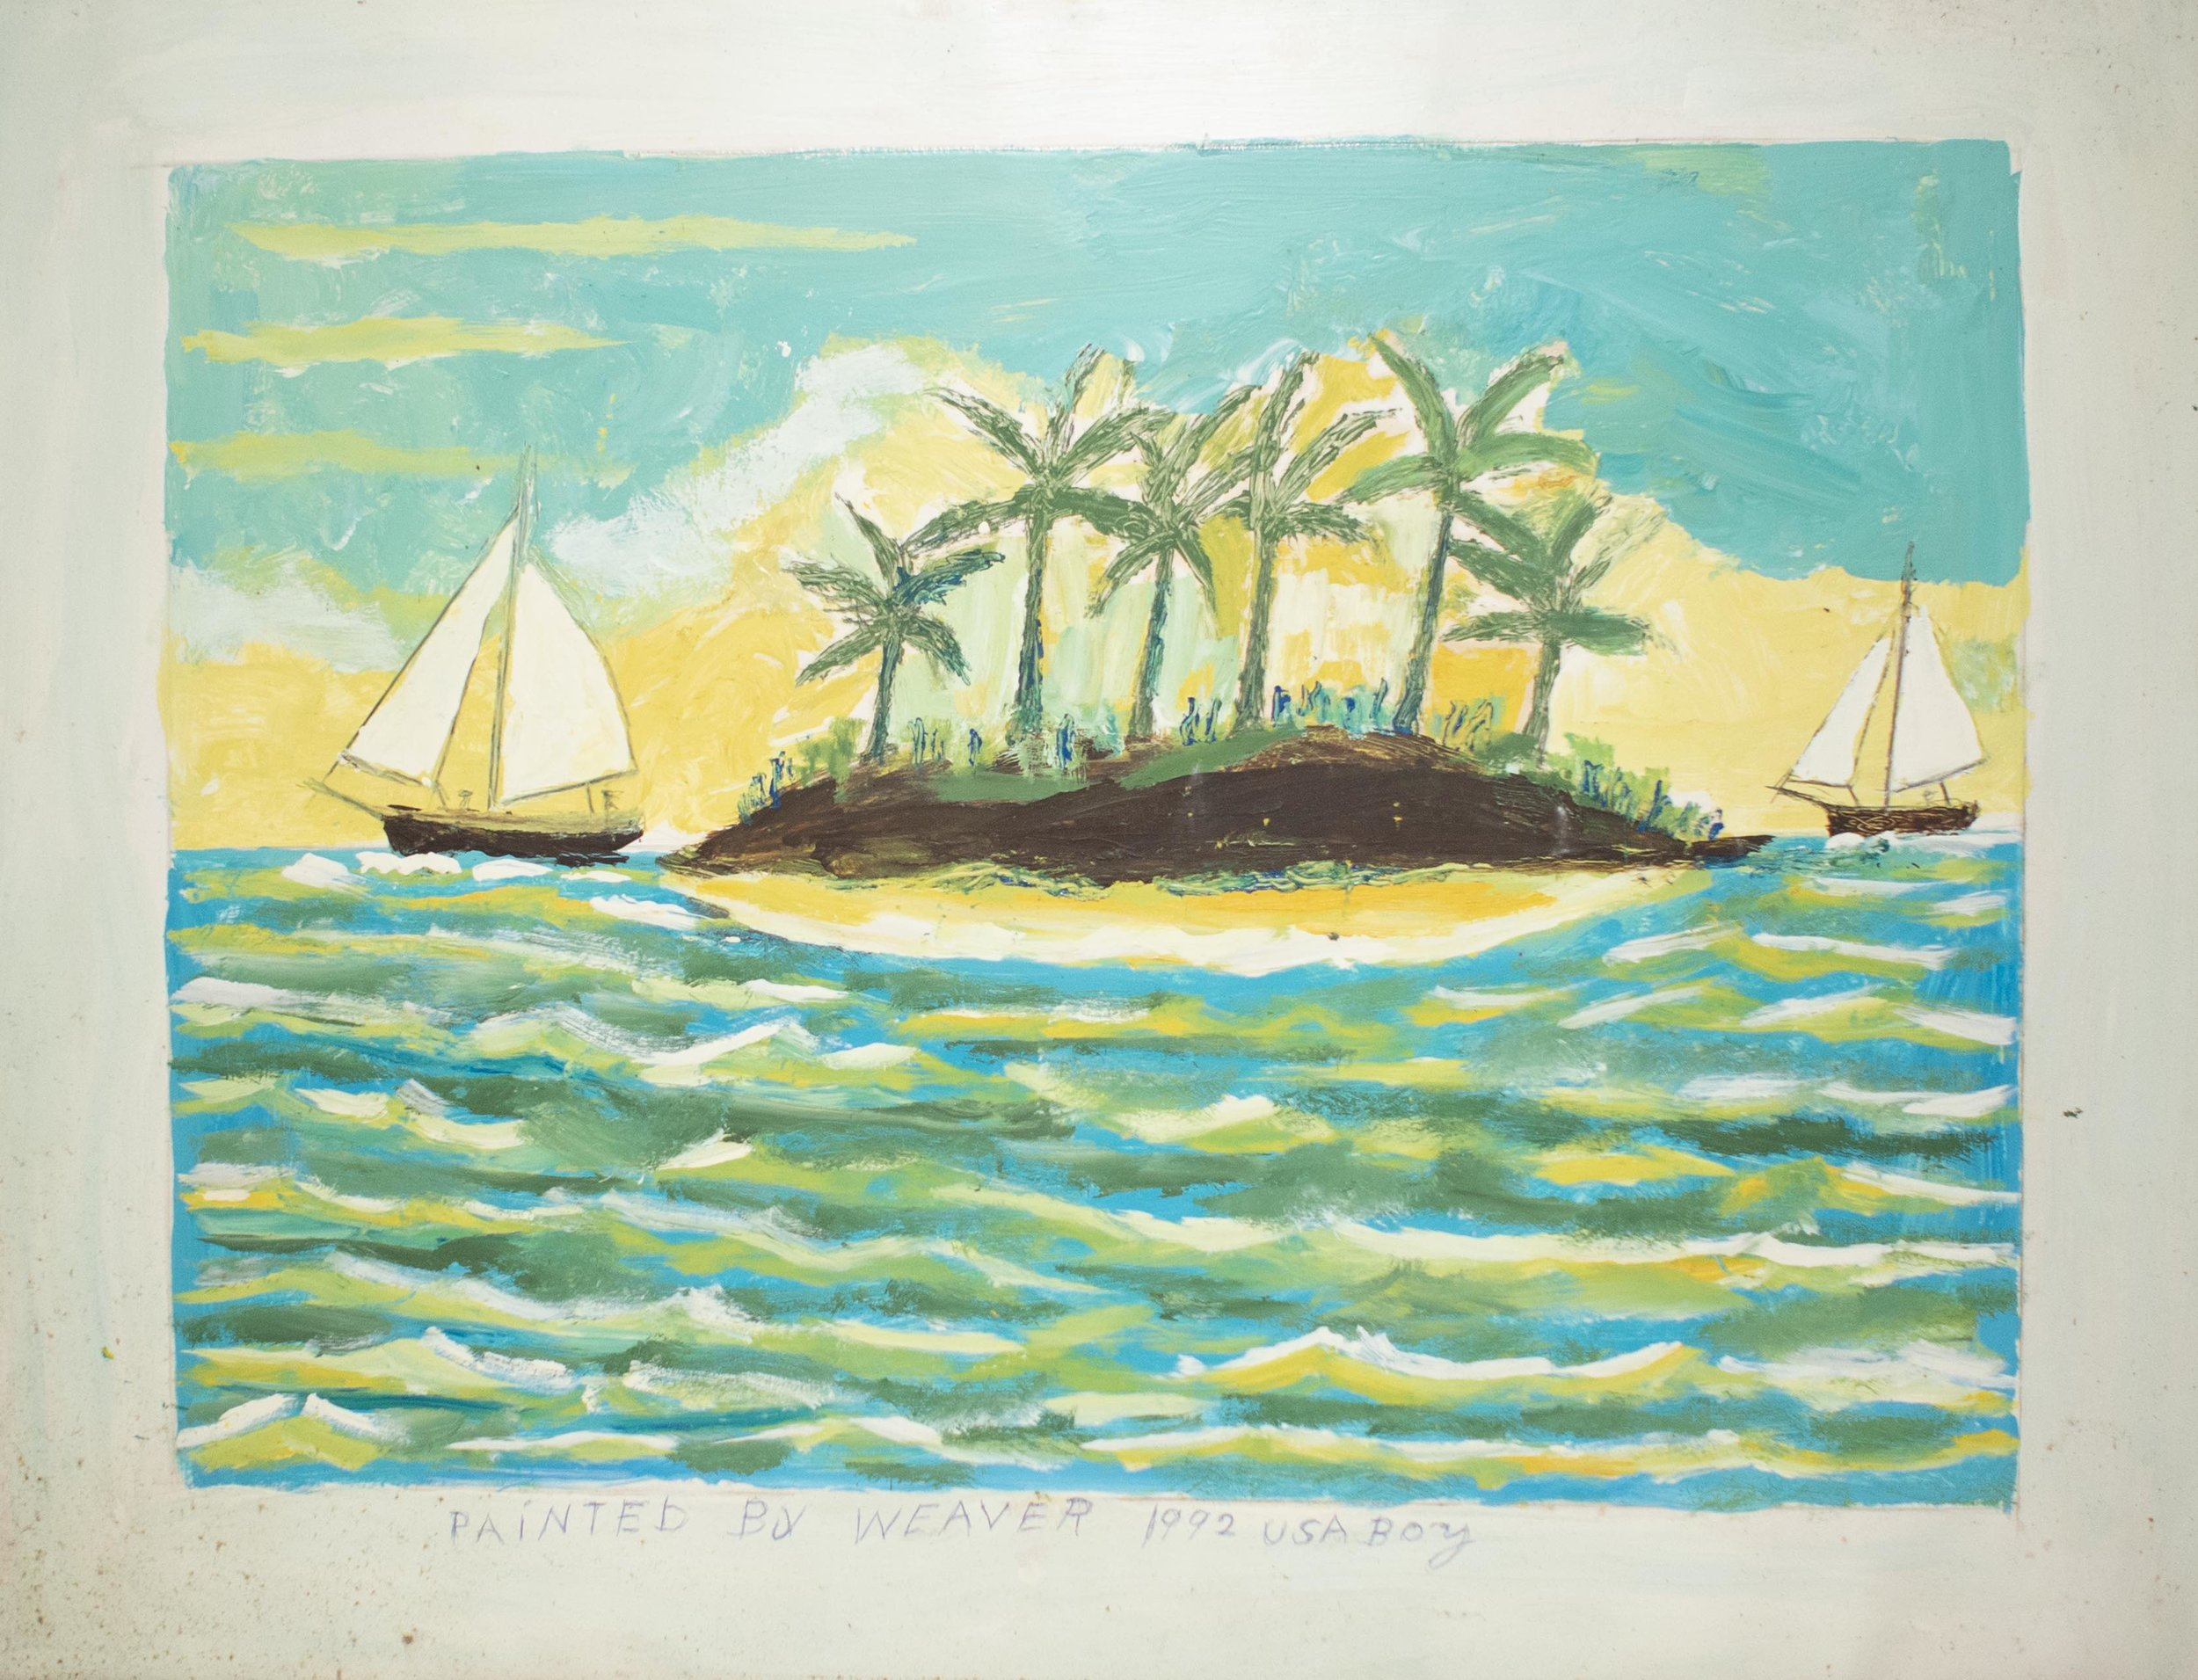 Joe Monks. Cay with two sailboats II, acrylic and pencil on card. 1992.